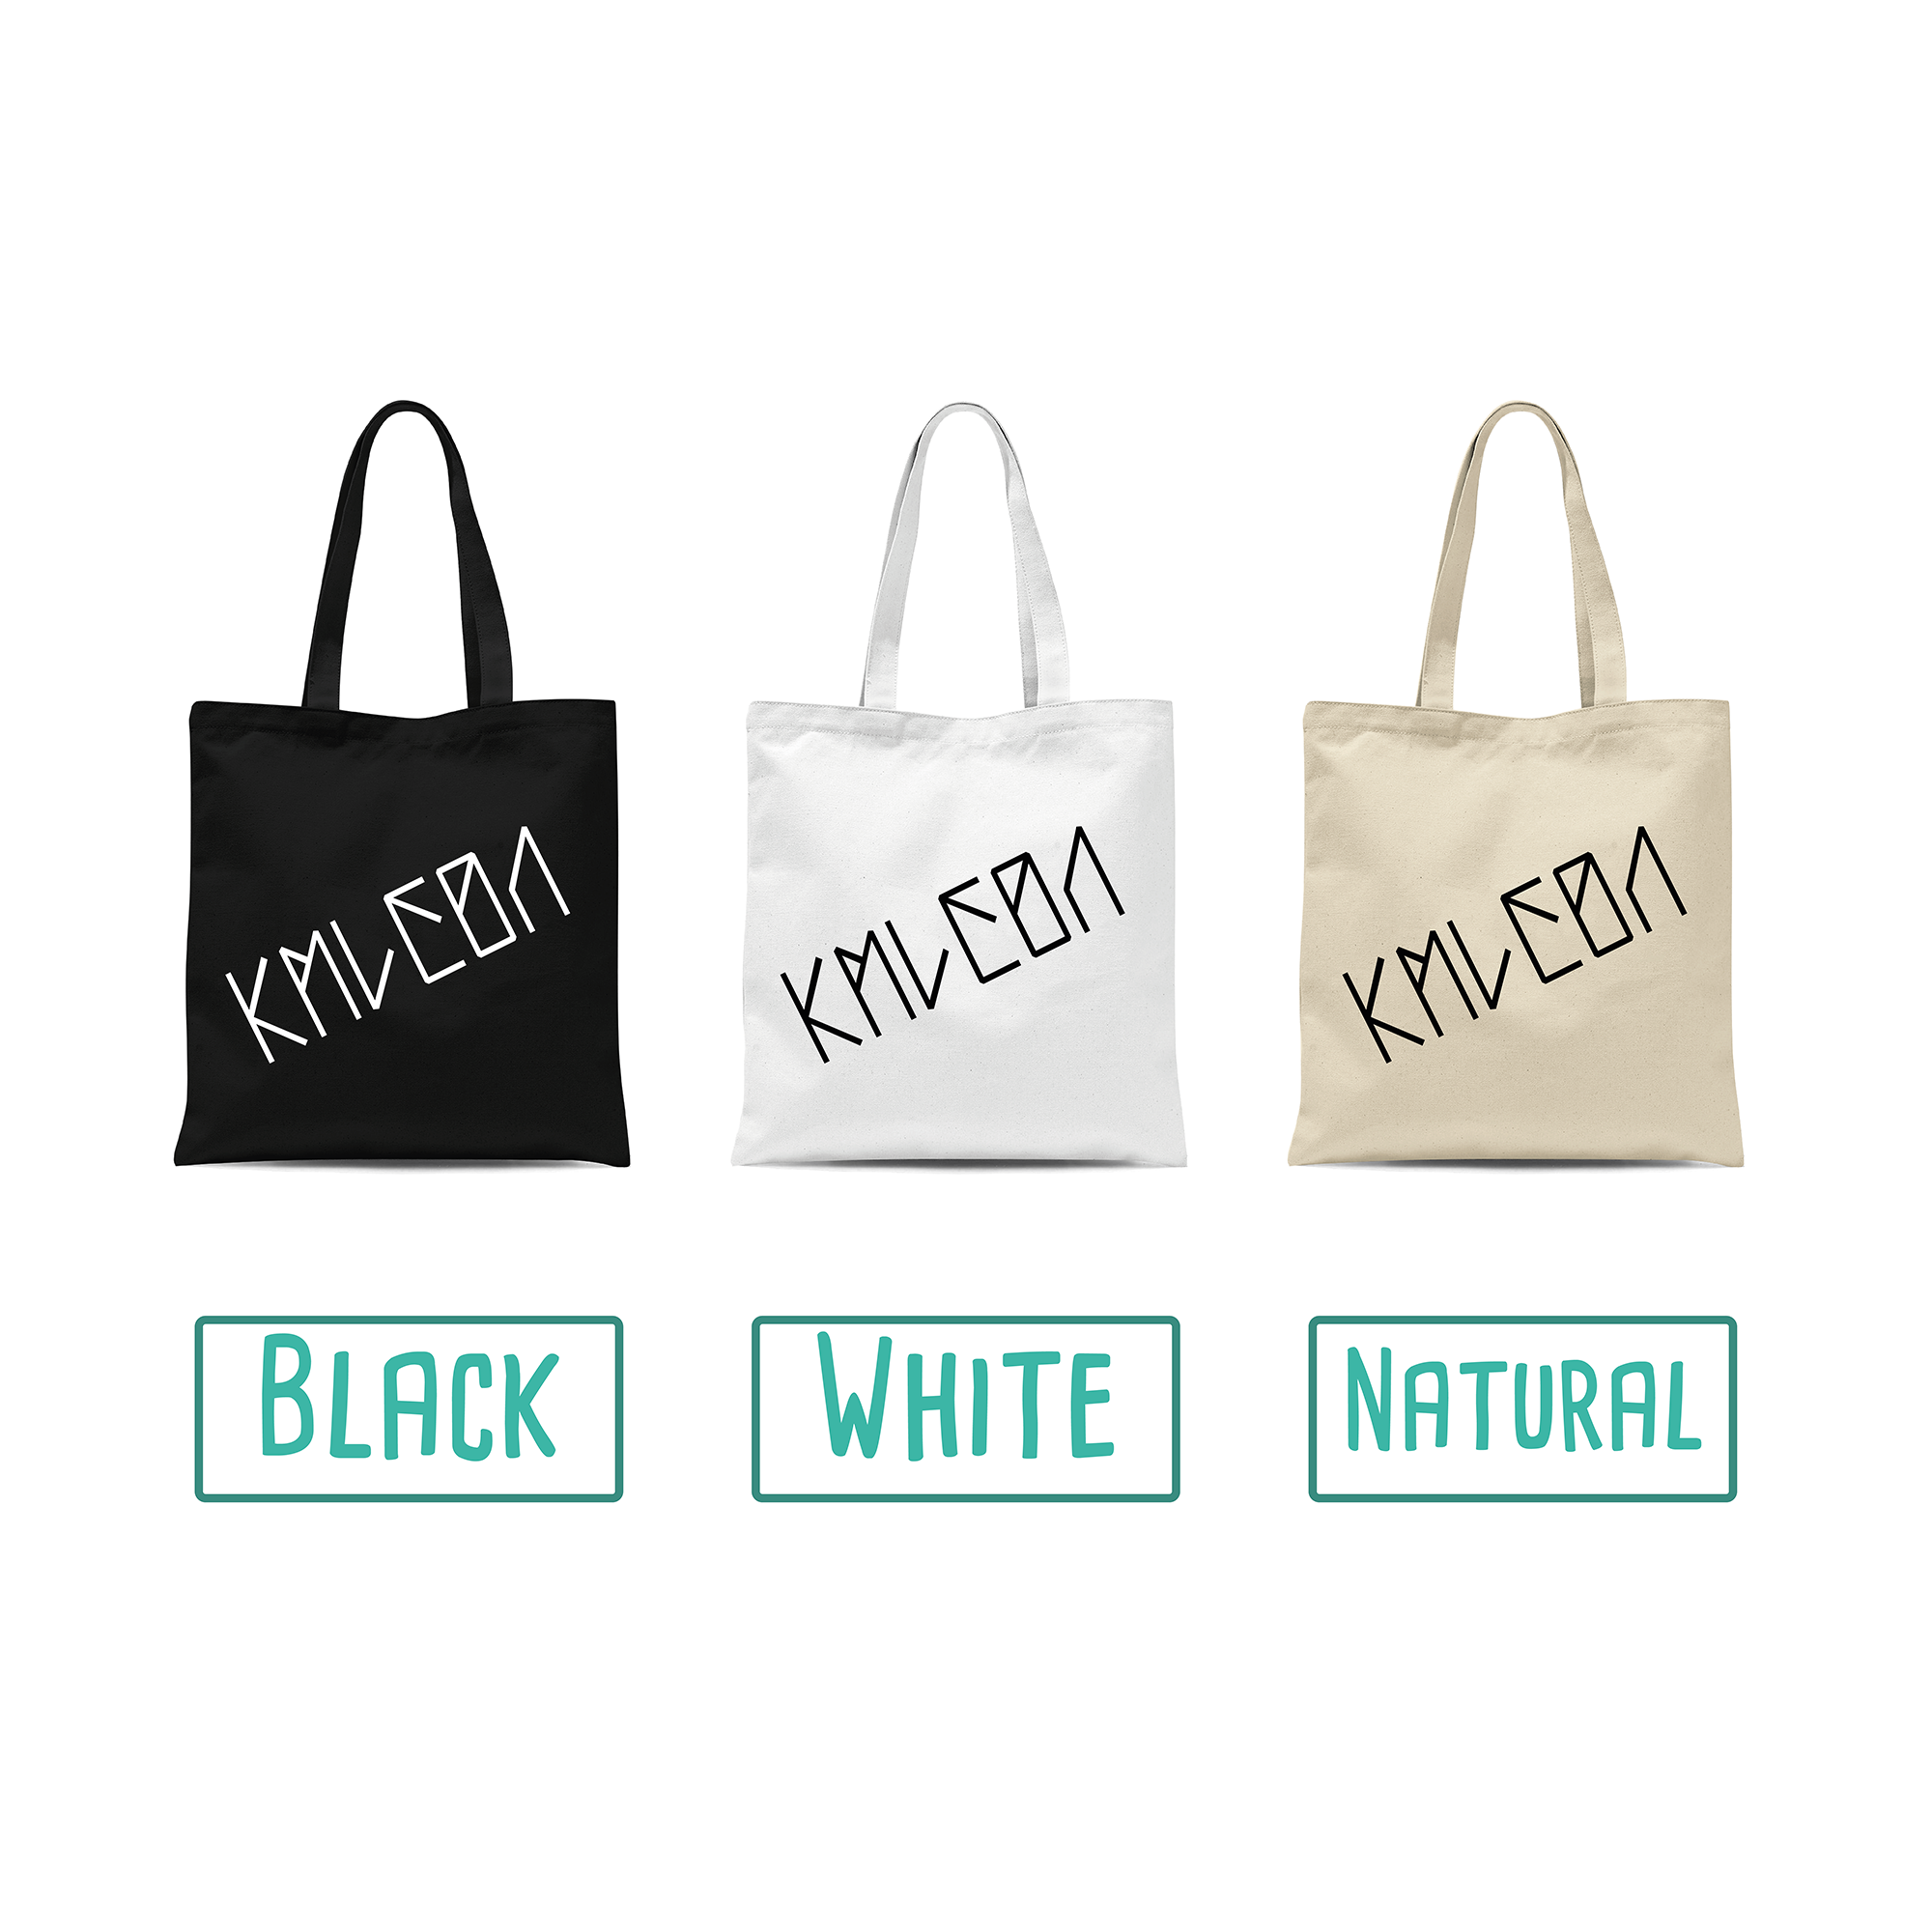 'Amateur adult' tote bag